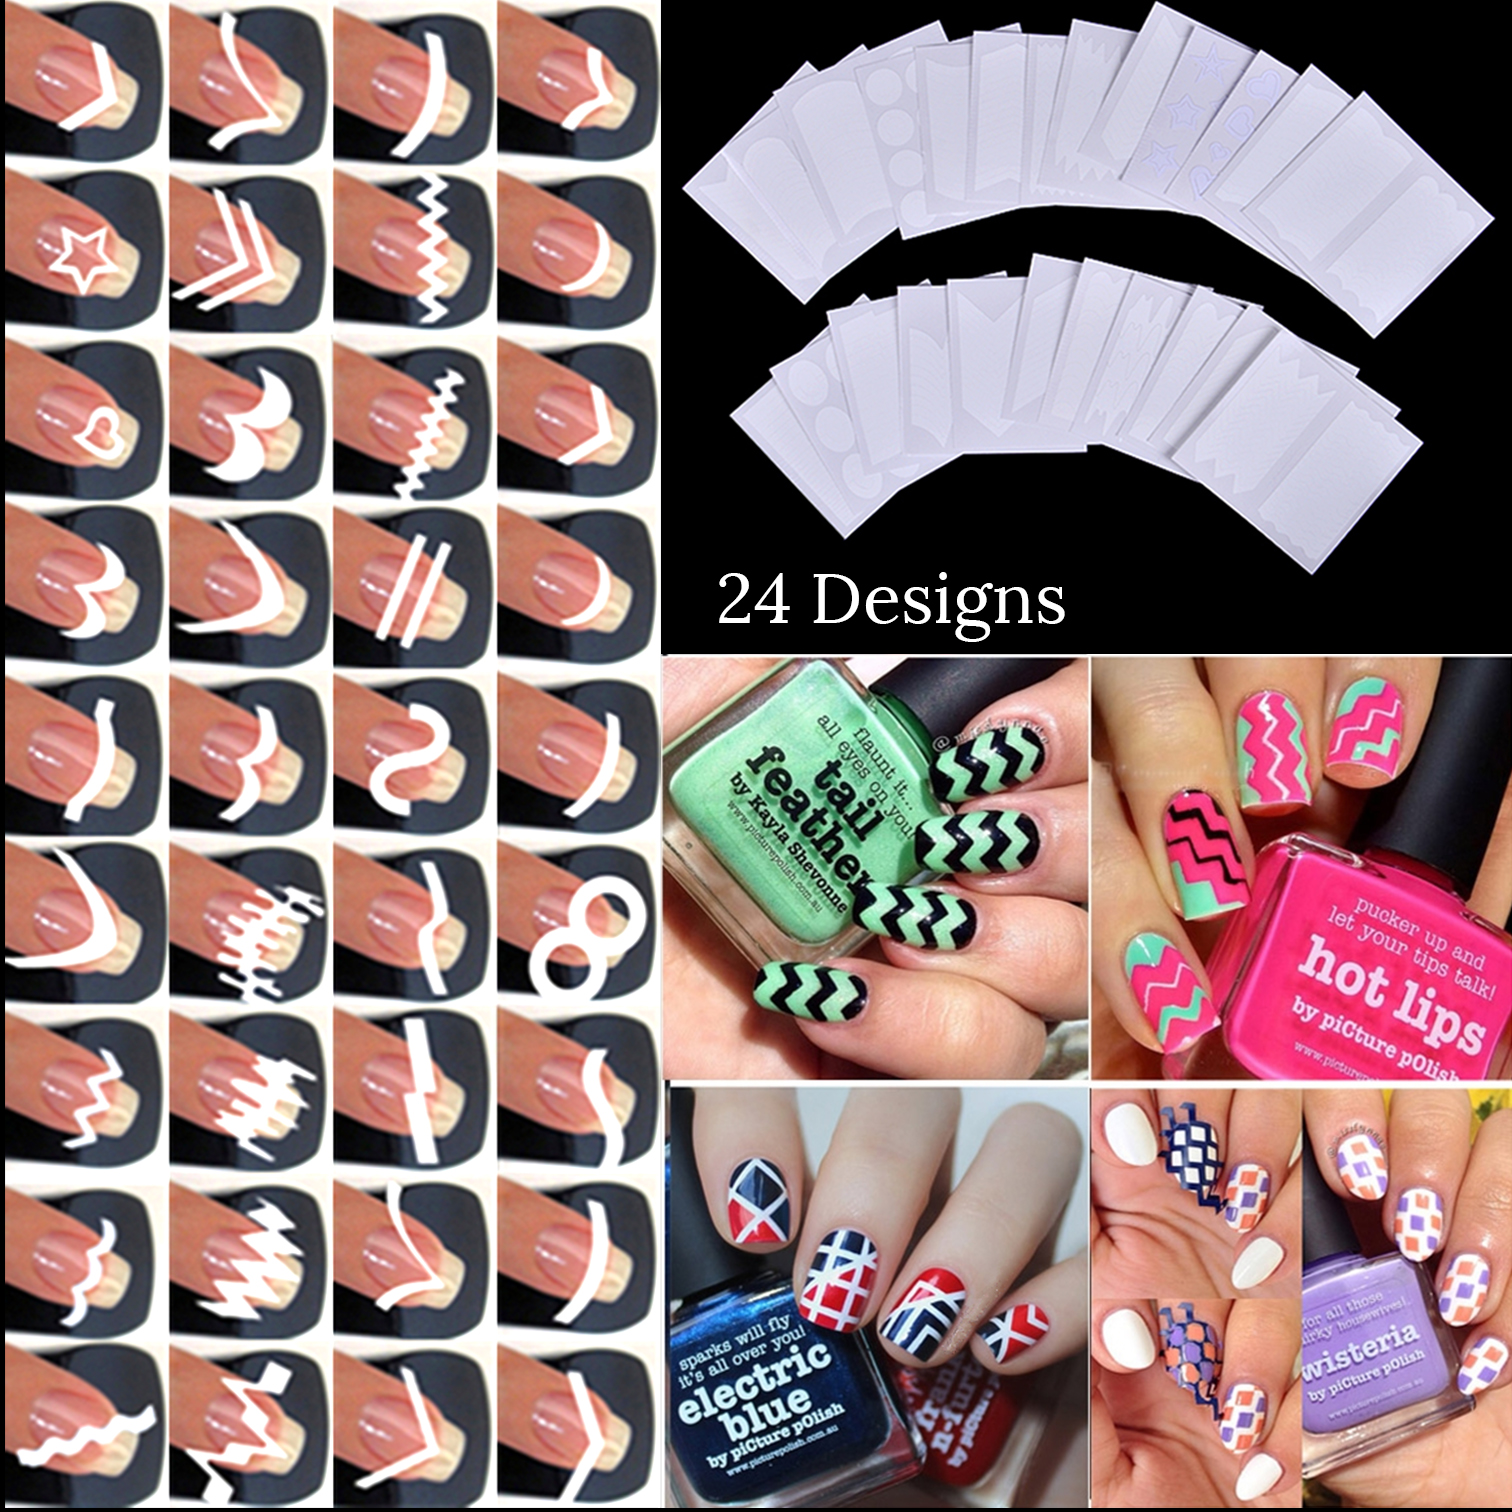 24pcs/set Nail Art Guide Tips Hollow Stencils Sticker French Manicure Template 3D Vinyls Decals Form Styling Tool 12pcs set nail art guide tips hollow stencils sticker french manicure template 3d vinyls decals form styling tool